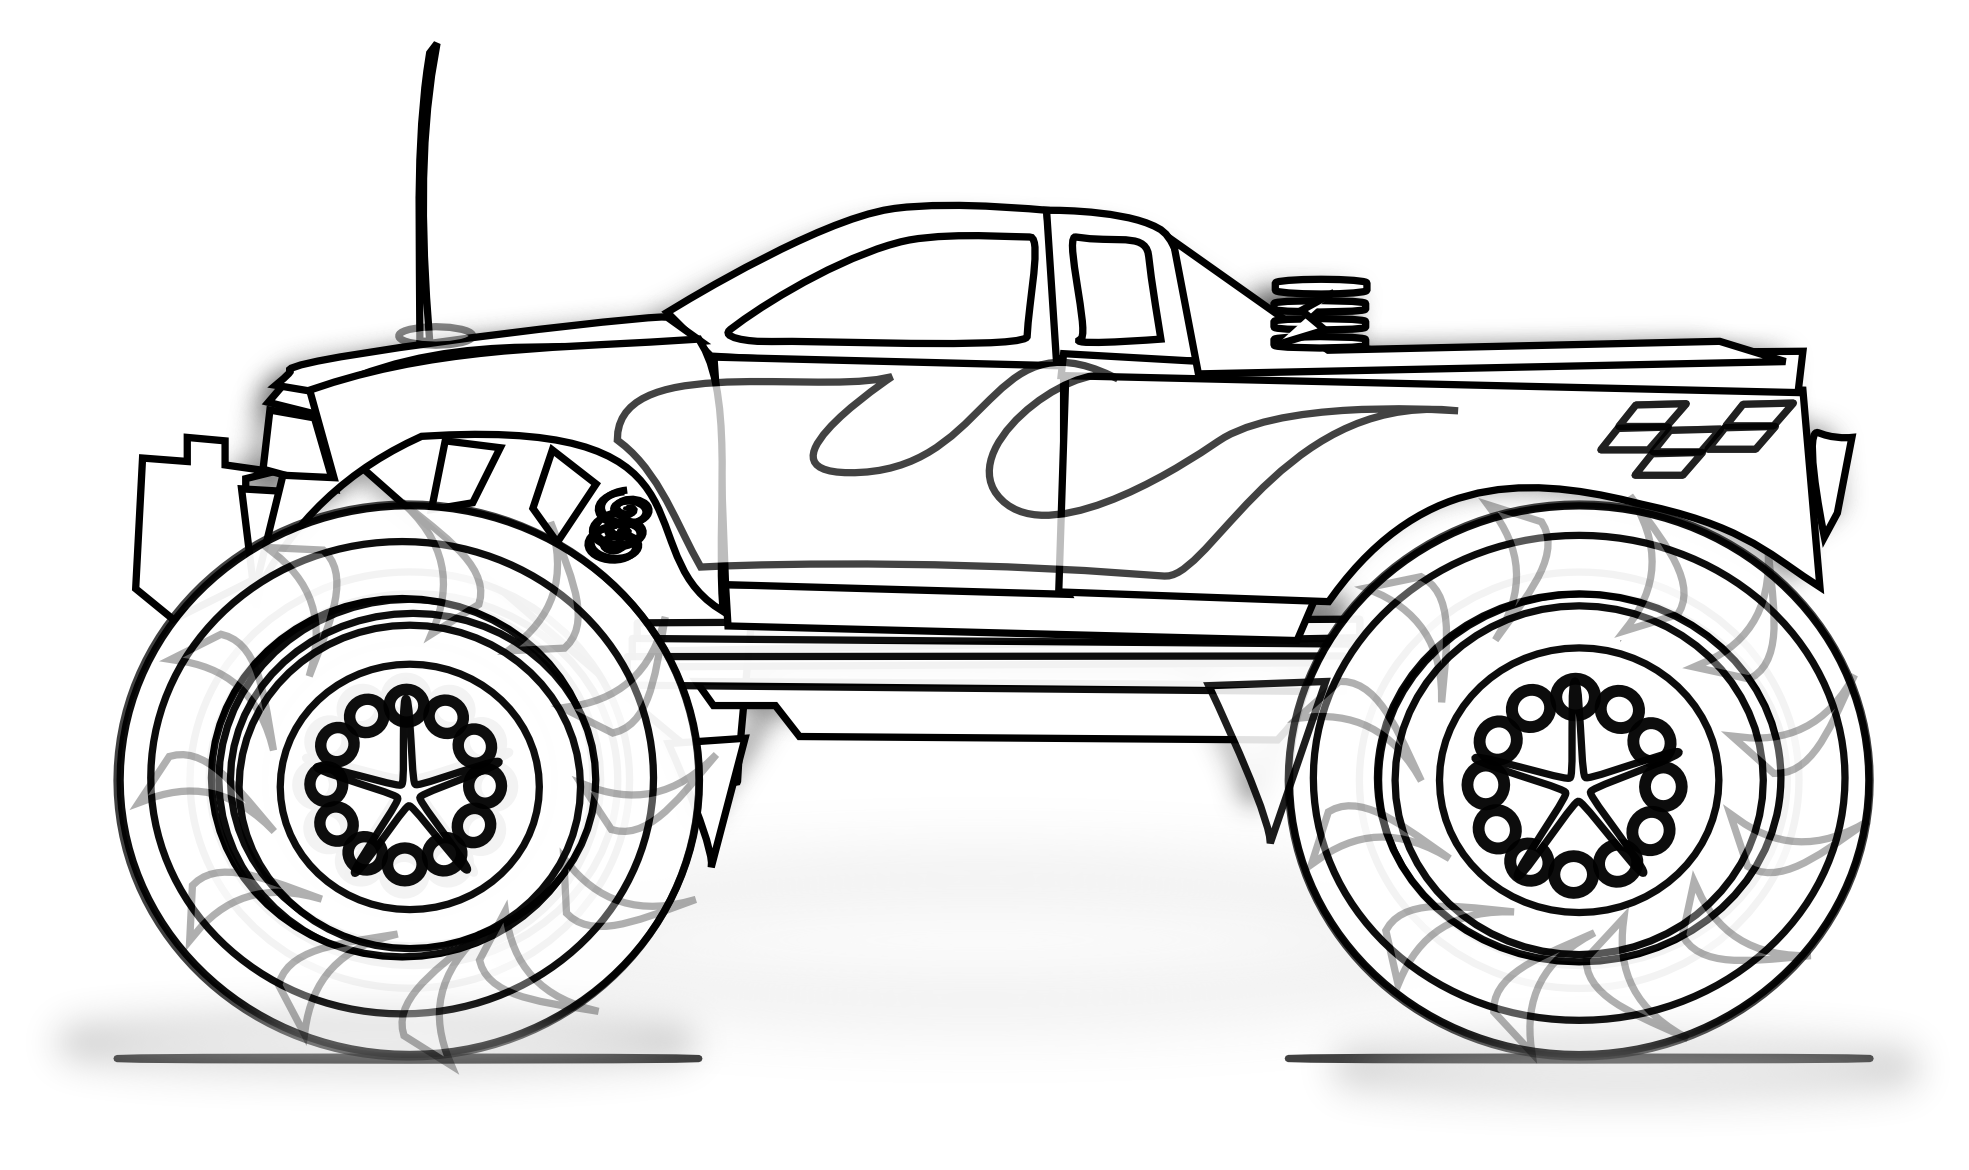 Motorcycle clipart coloring page. Free printable monster truck